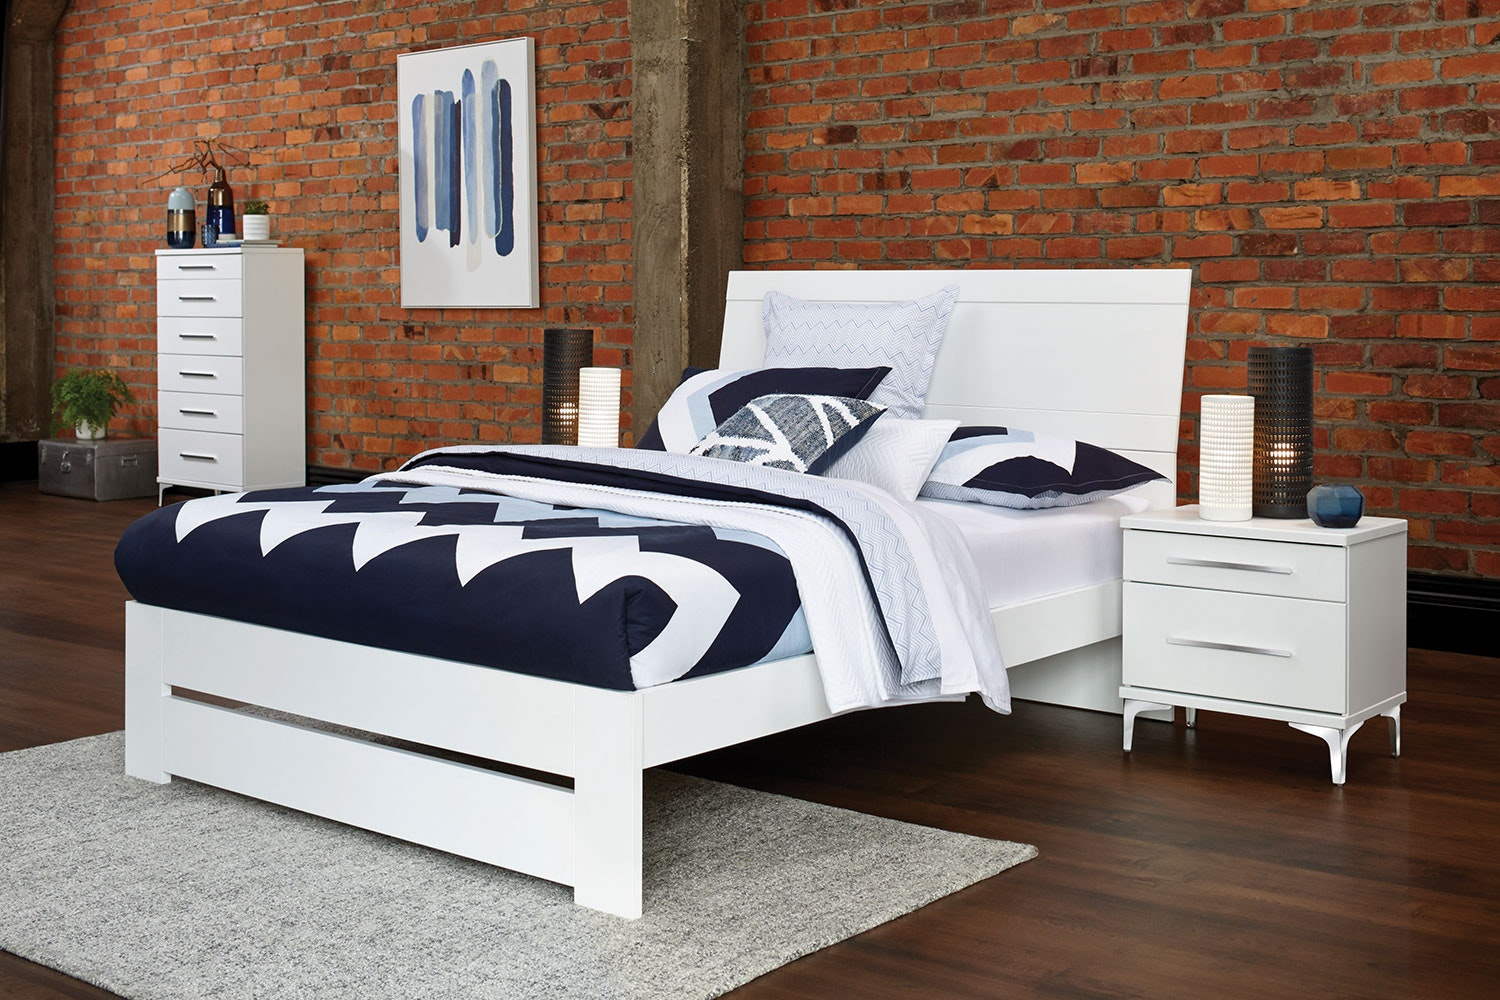 Salento Queen 4 Piece Bedroom Suite by Platform 10